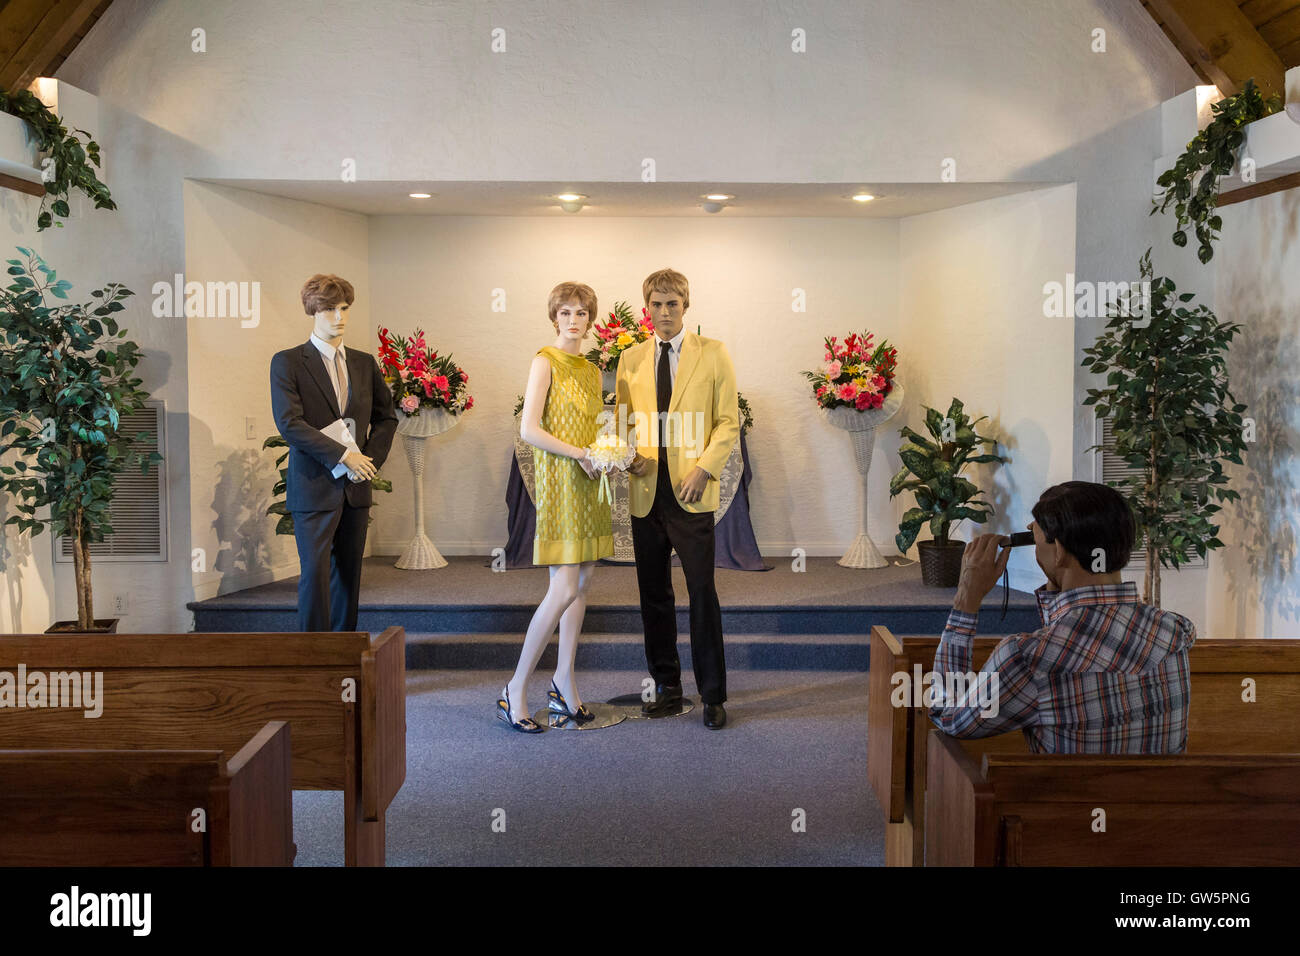 Las Vegas, Nevada - The Candlelight Wedding Chapel at the Clark County Museum. - Stock Image